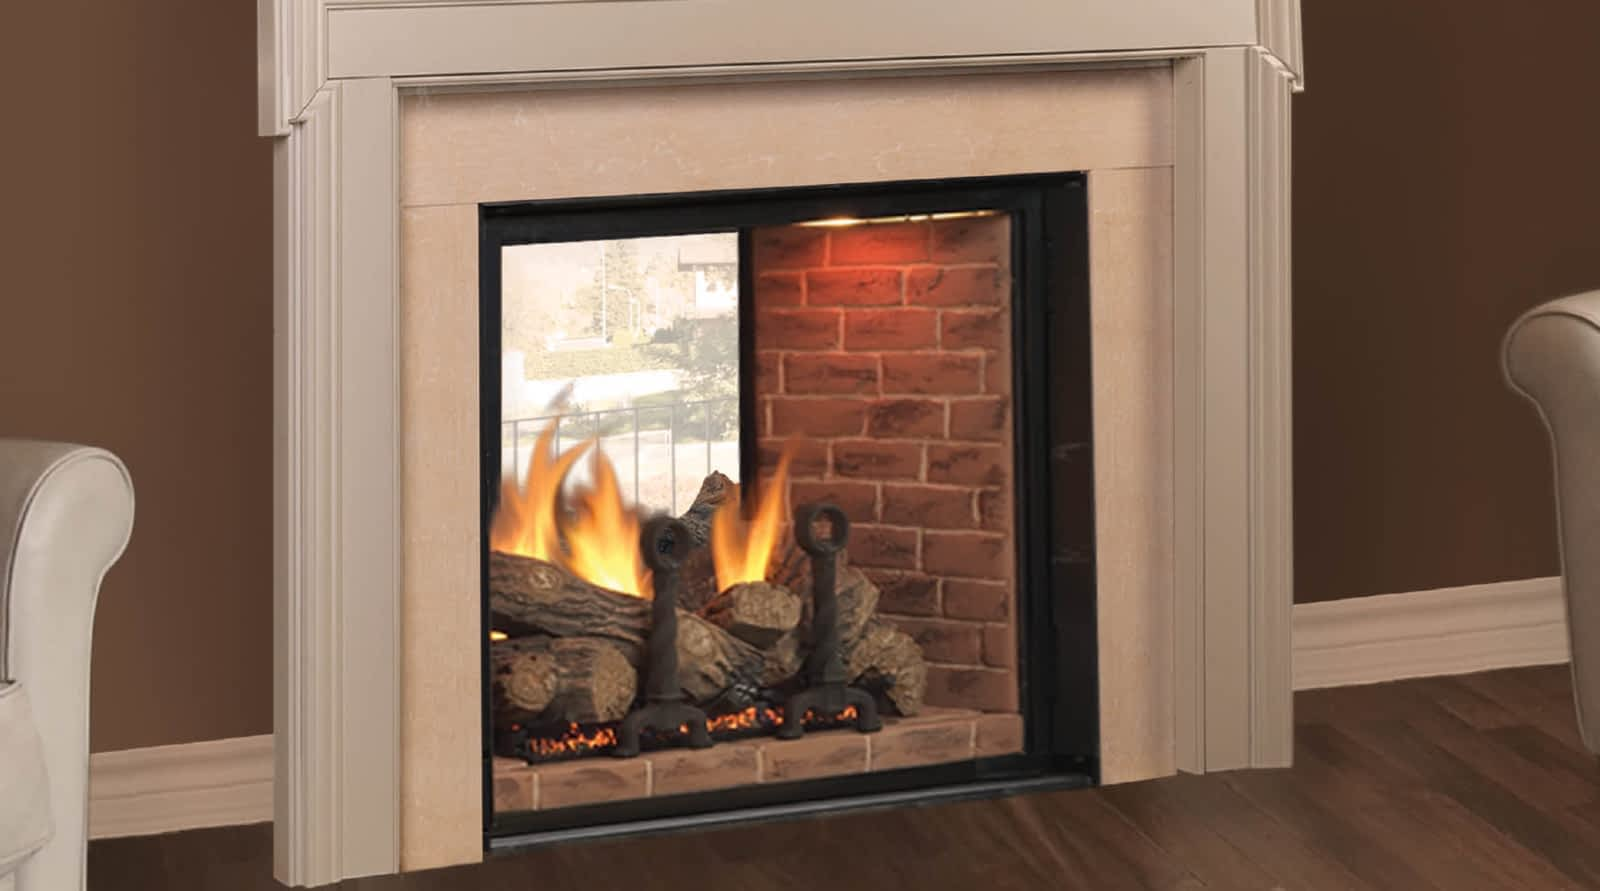 heating gas real fire fires shop turfrey flame landscape fireplace